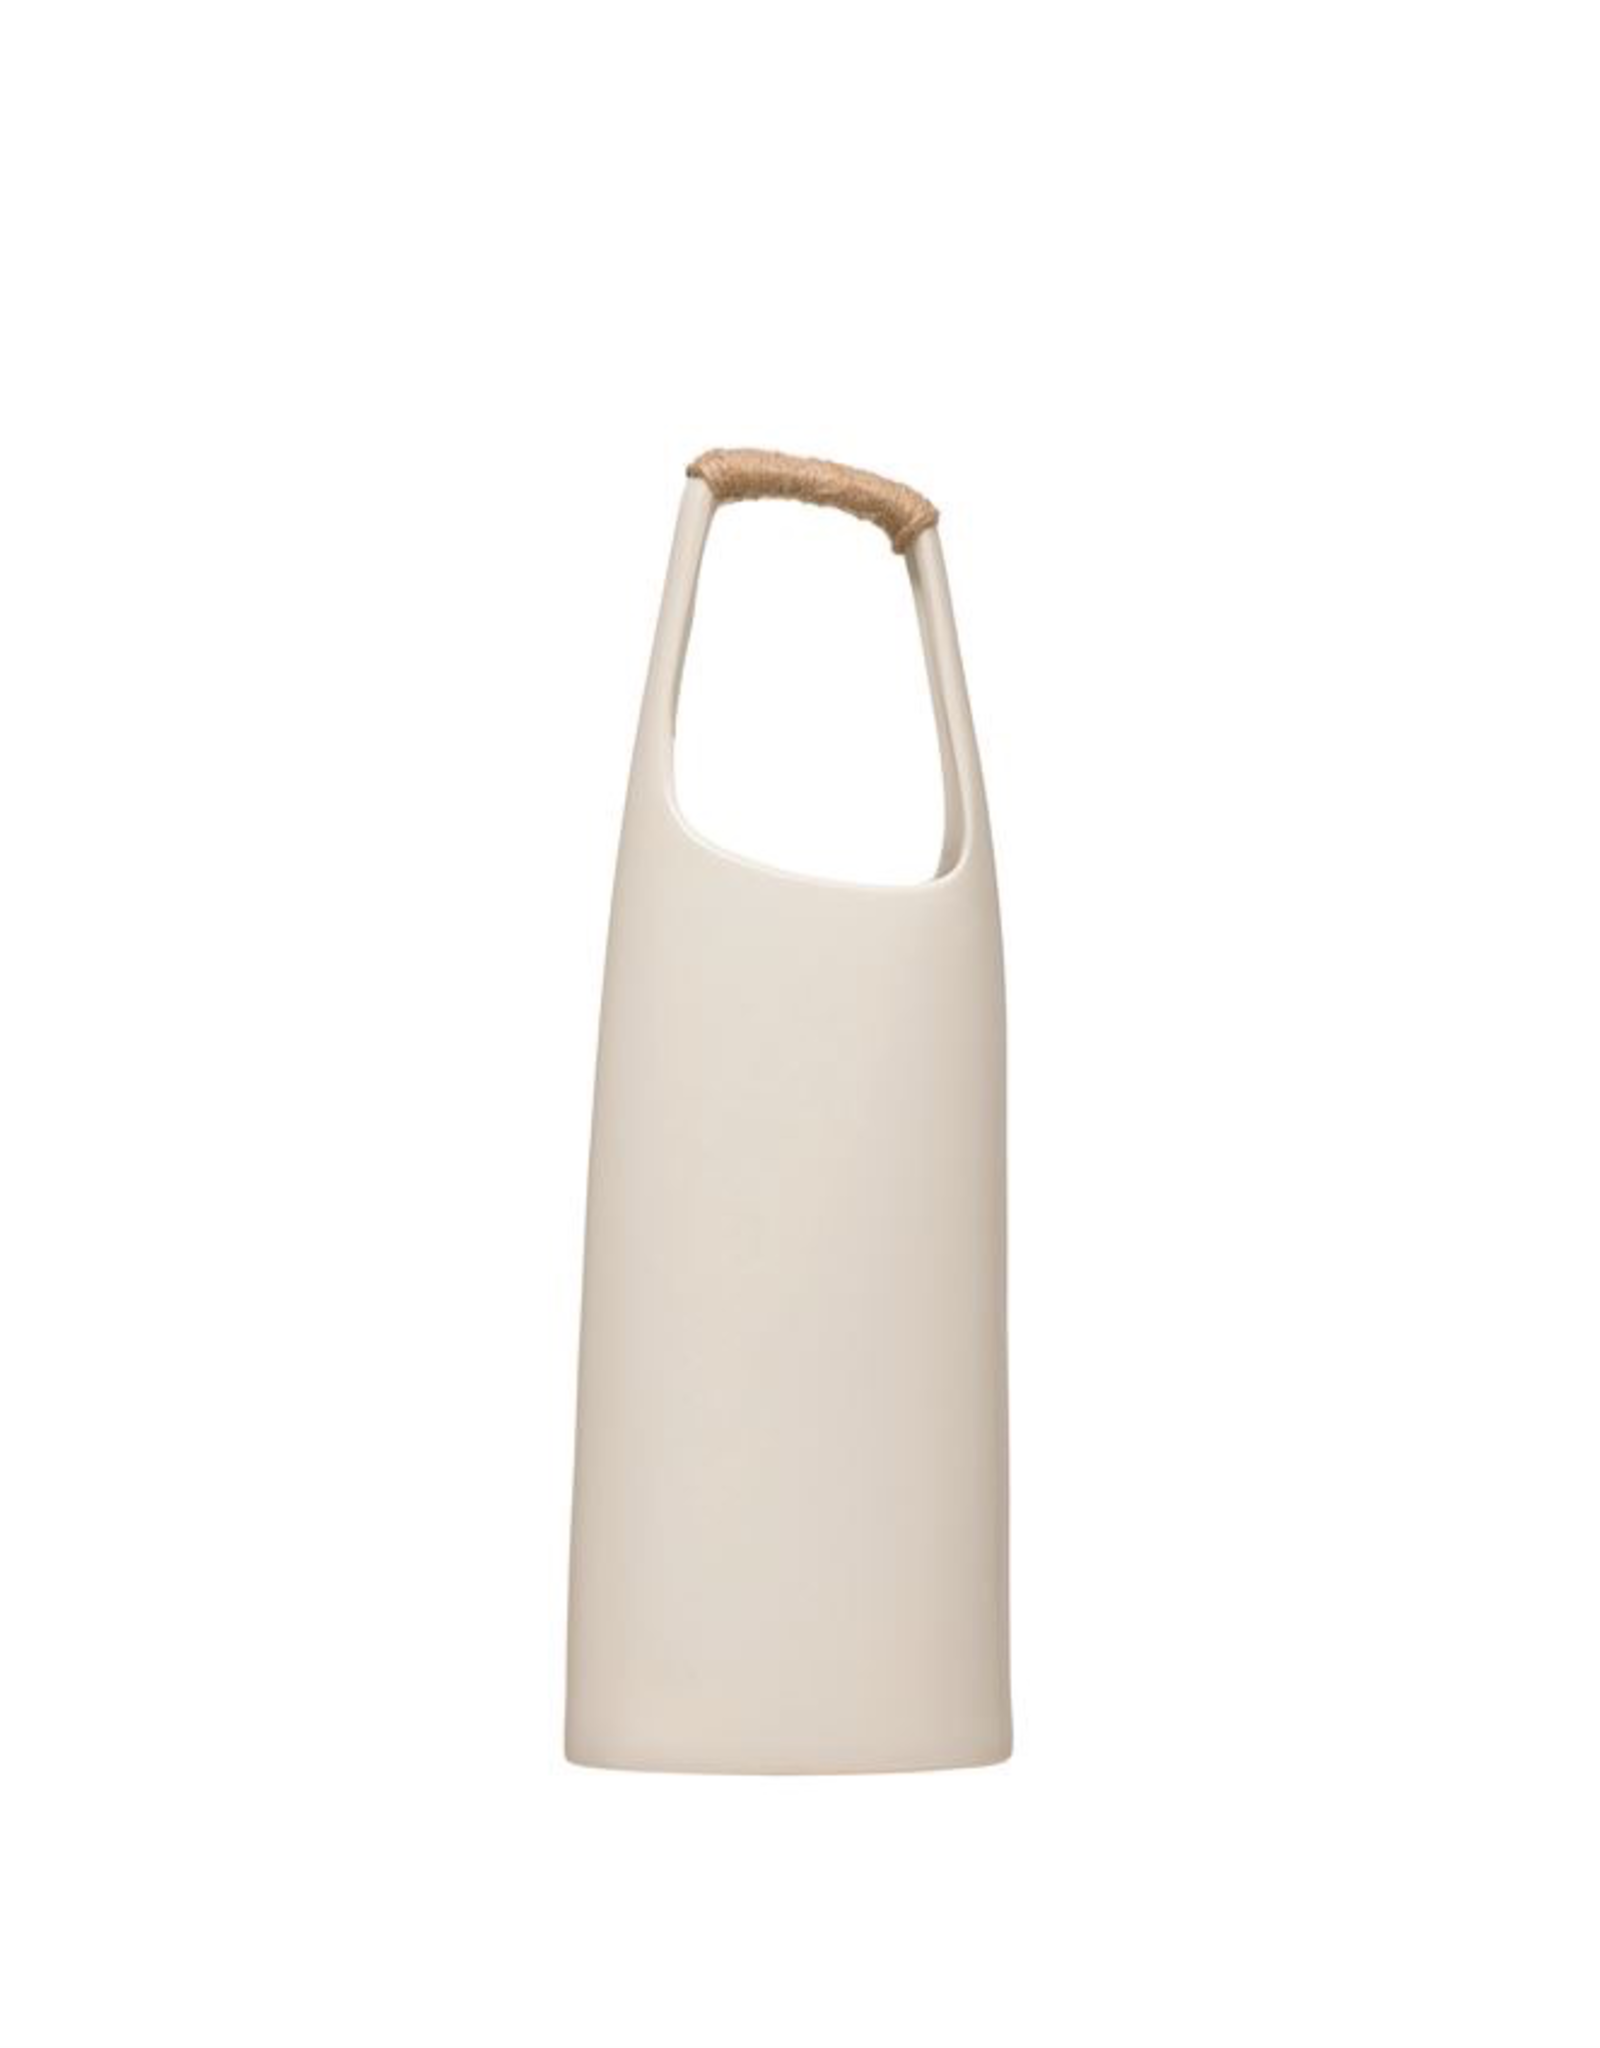 Stoneware Vase, Rattan Wrapped Handle, White, H19""